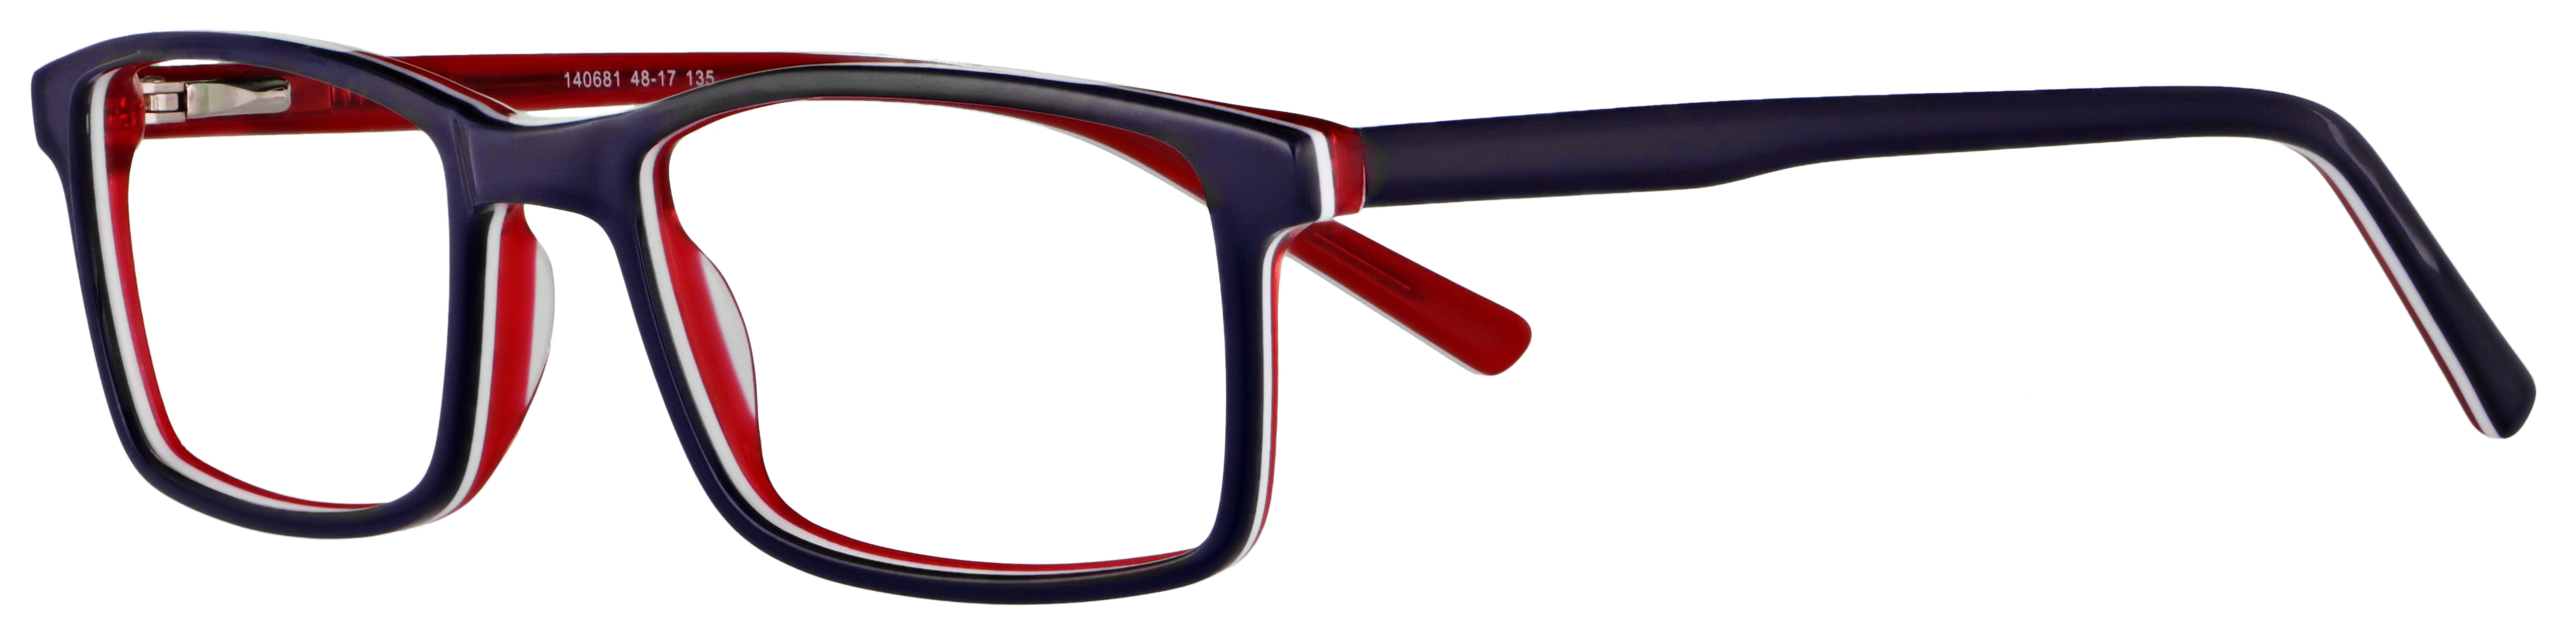 abele optik Kinderbrille 140681